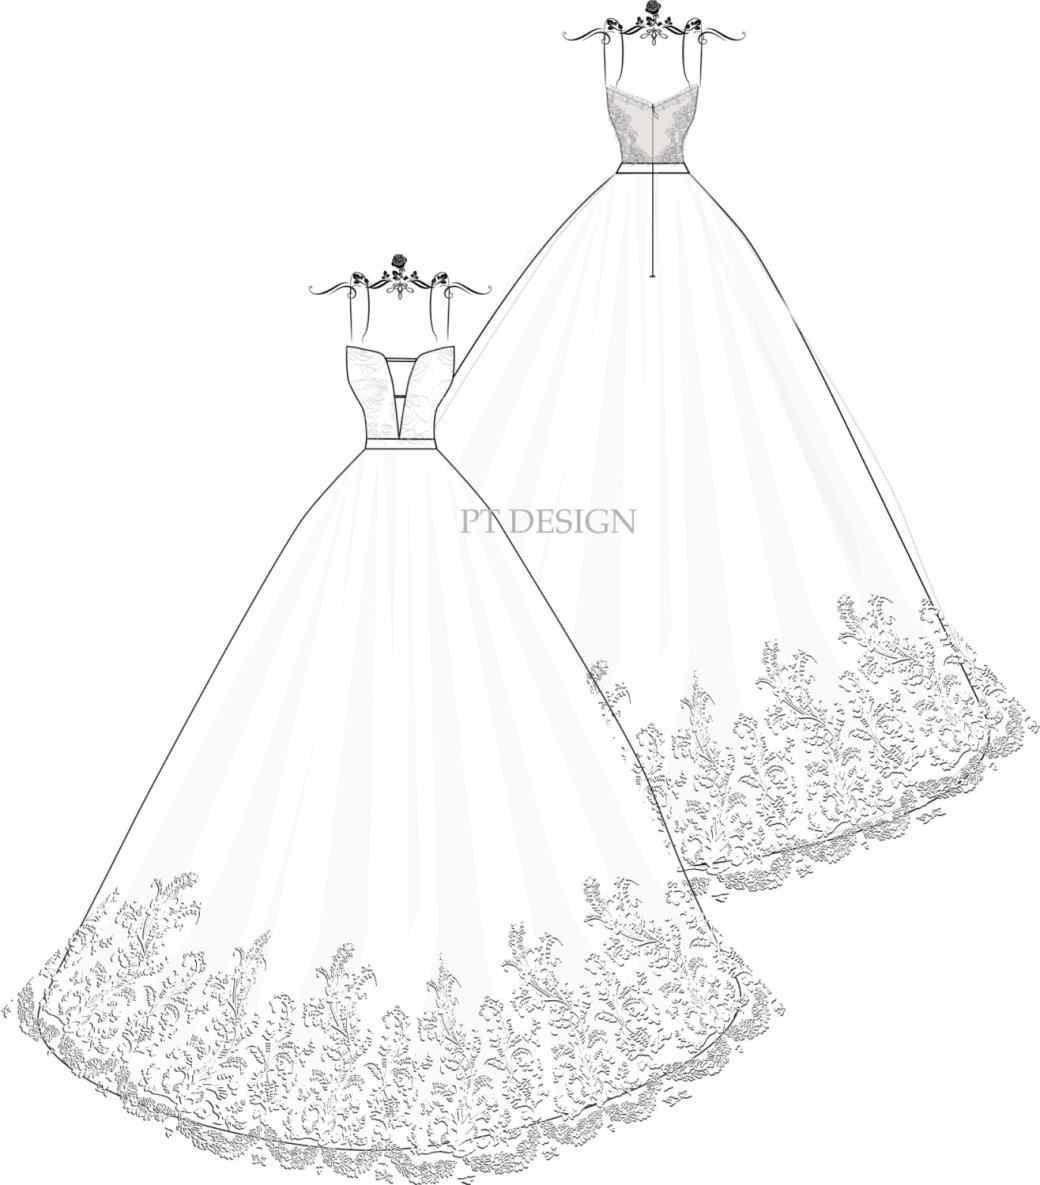 Simple Dress Drawing at GetDrawings.com   Free for personal use ...